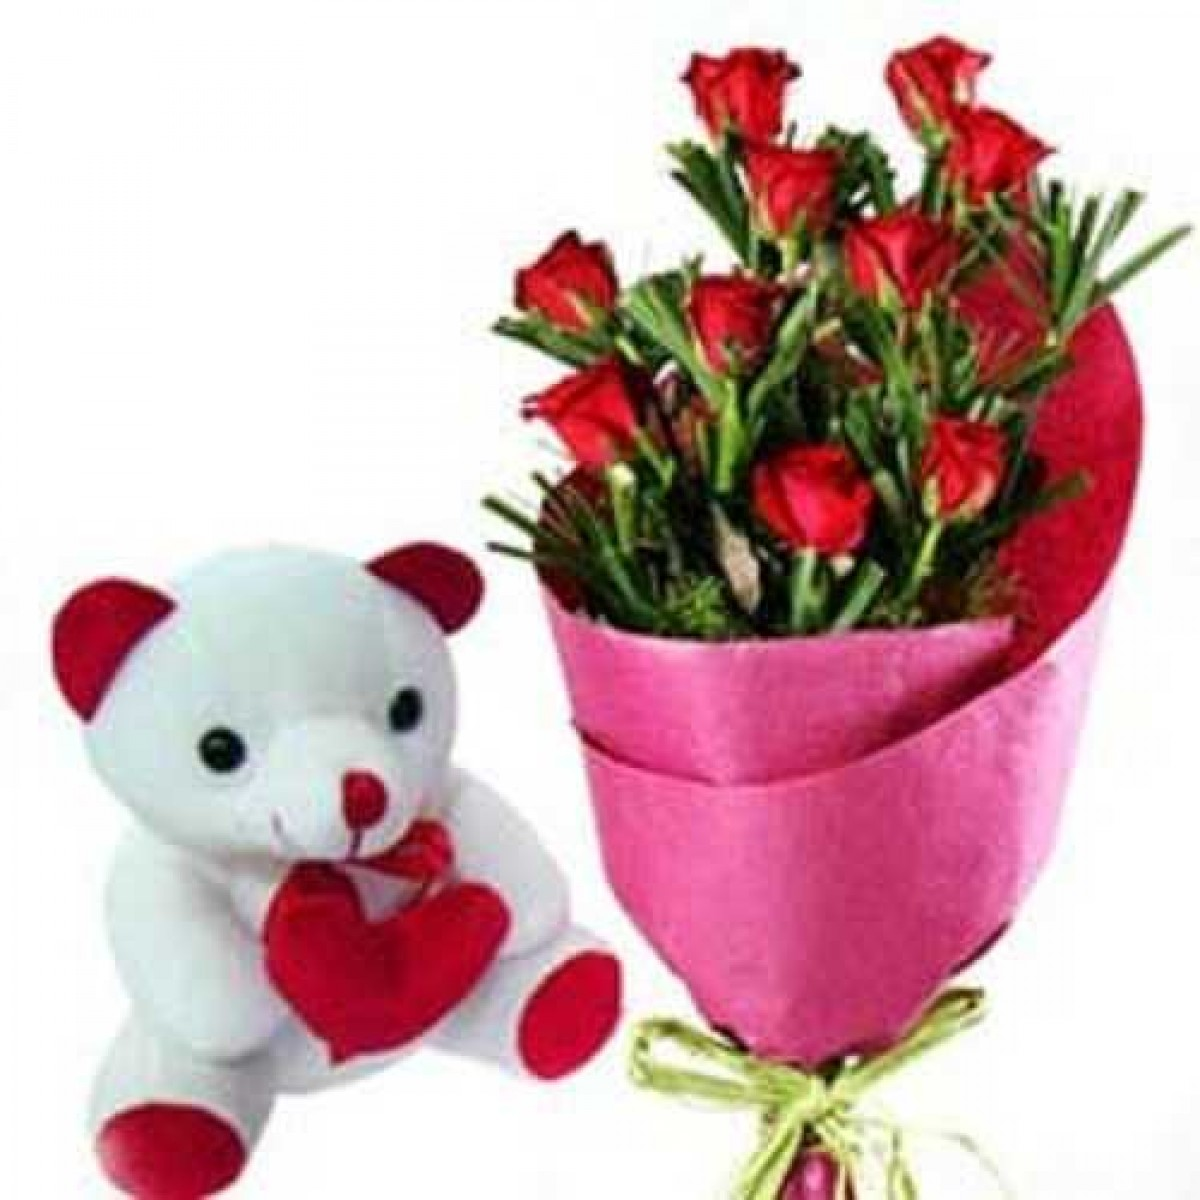 Red rose bunch with white teddy bear izmirmasajfo